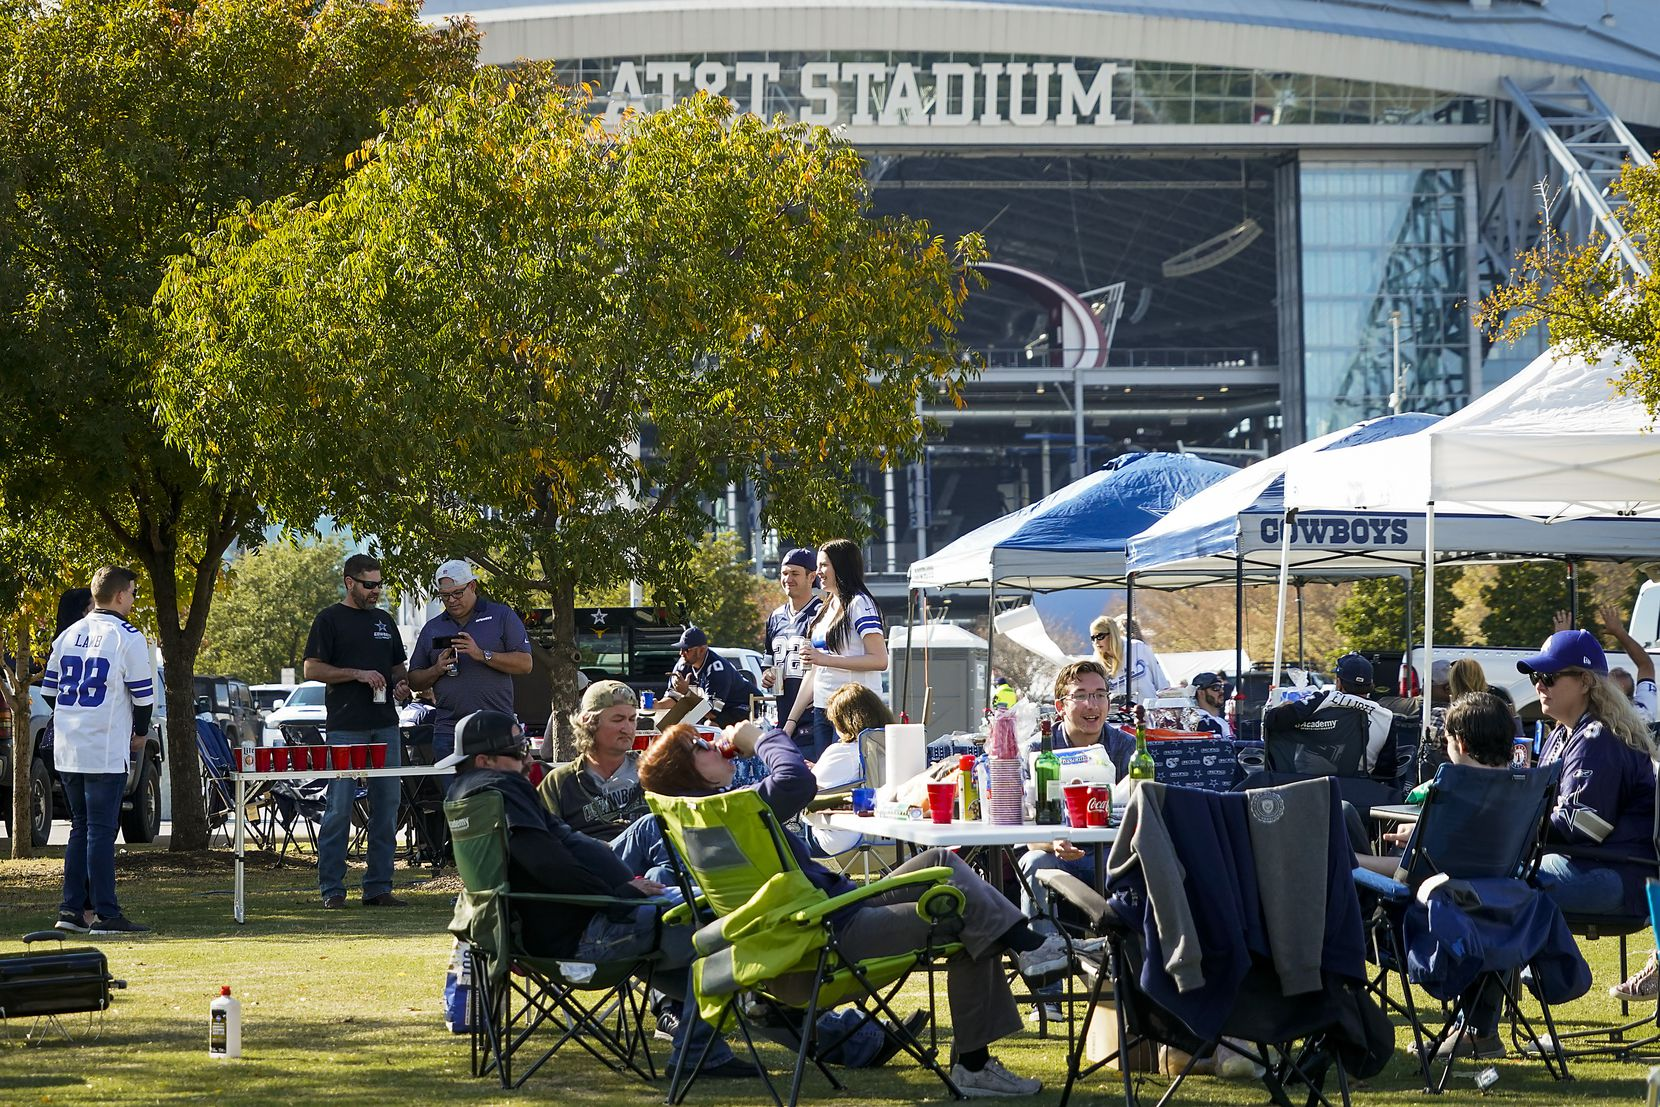 Fans tailgate before an NFL football game between the Dallas Cowboys and the Washington Football Team at AT&T Stadium on Thursday, Nov. 26, 2020, in Arlington. (Smiley N. Pool/The Dallas Morning News)